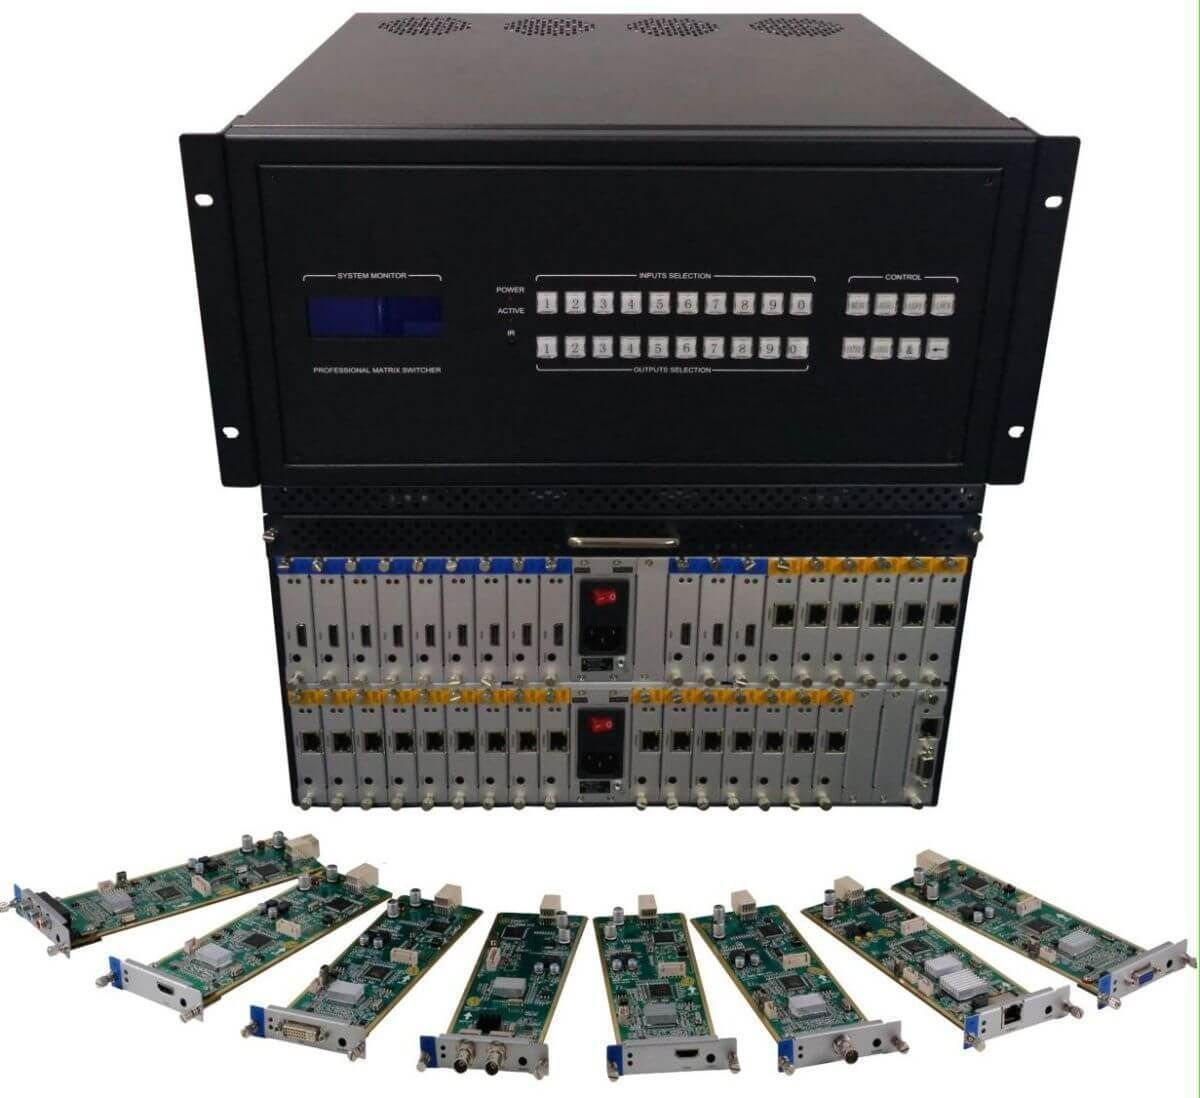 6x32 HDMI Matrix Switcher w/Video Wall Processor, 100ms Switching, Scaling & Separate Audio